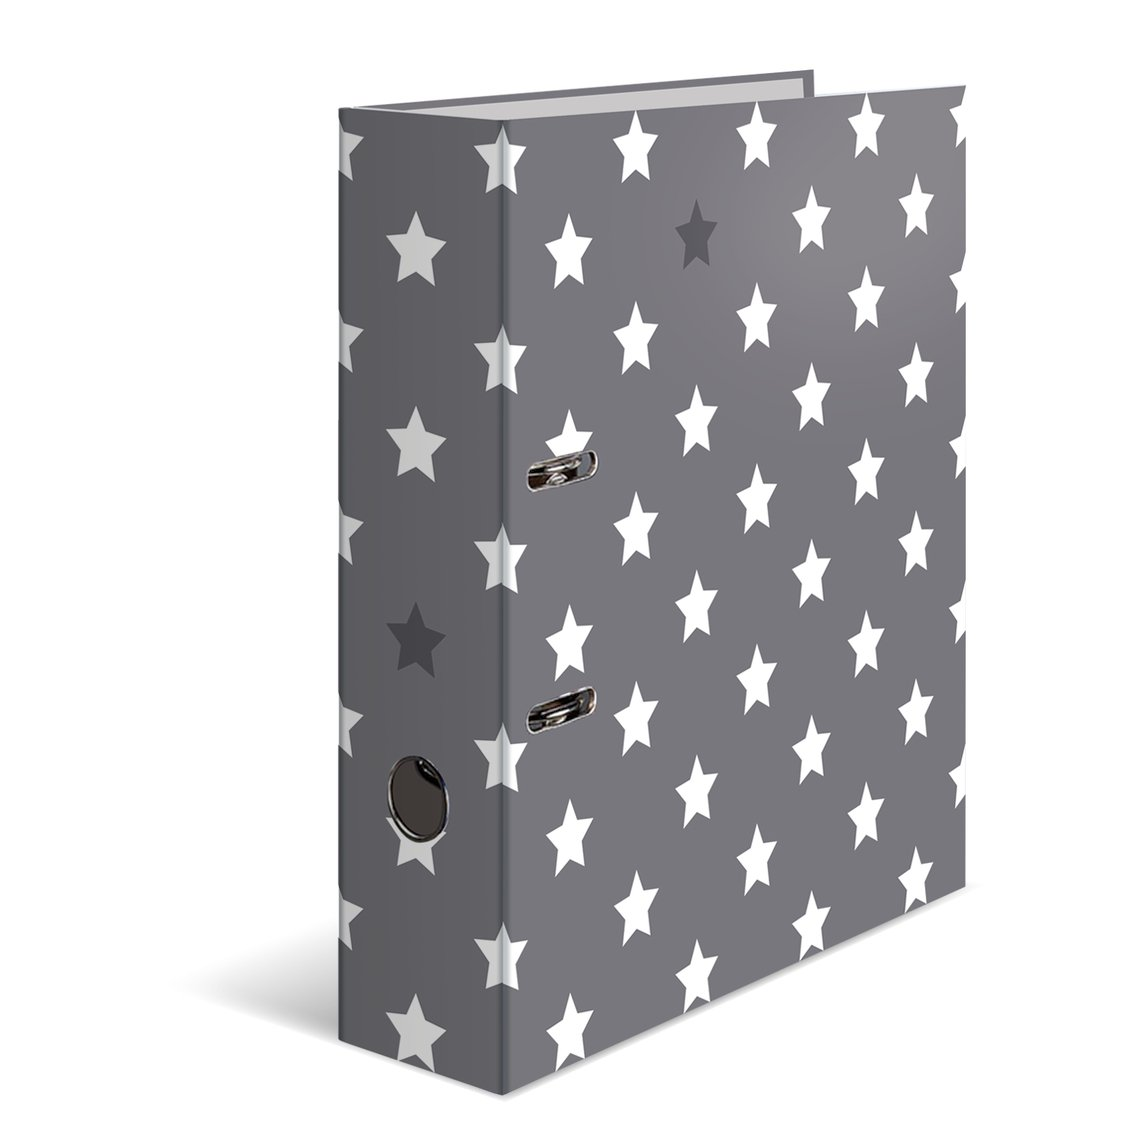 Herma 7194 Cardboard Folder A4 Series Stars – Grey with White Stars – 70 mm Wide, 1 File, with Printed